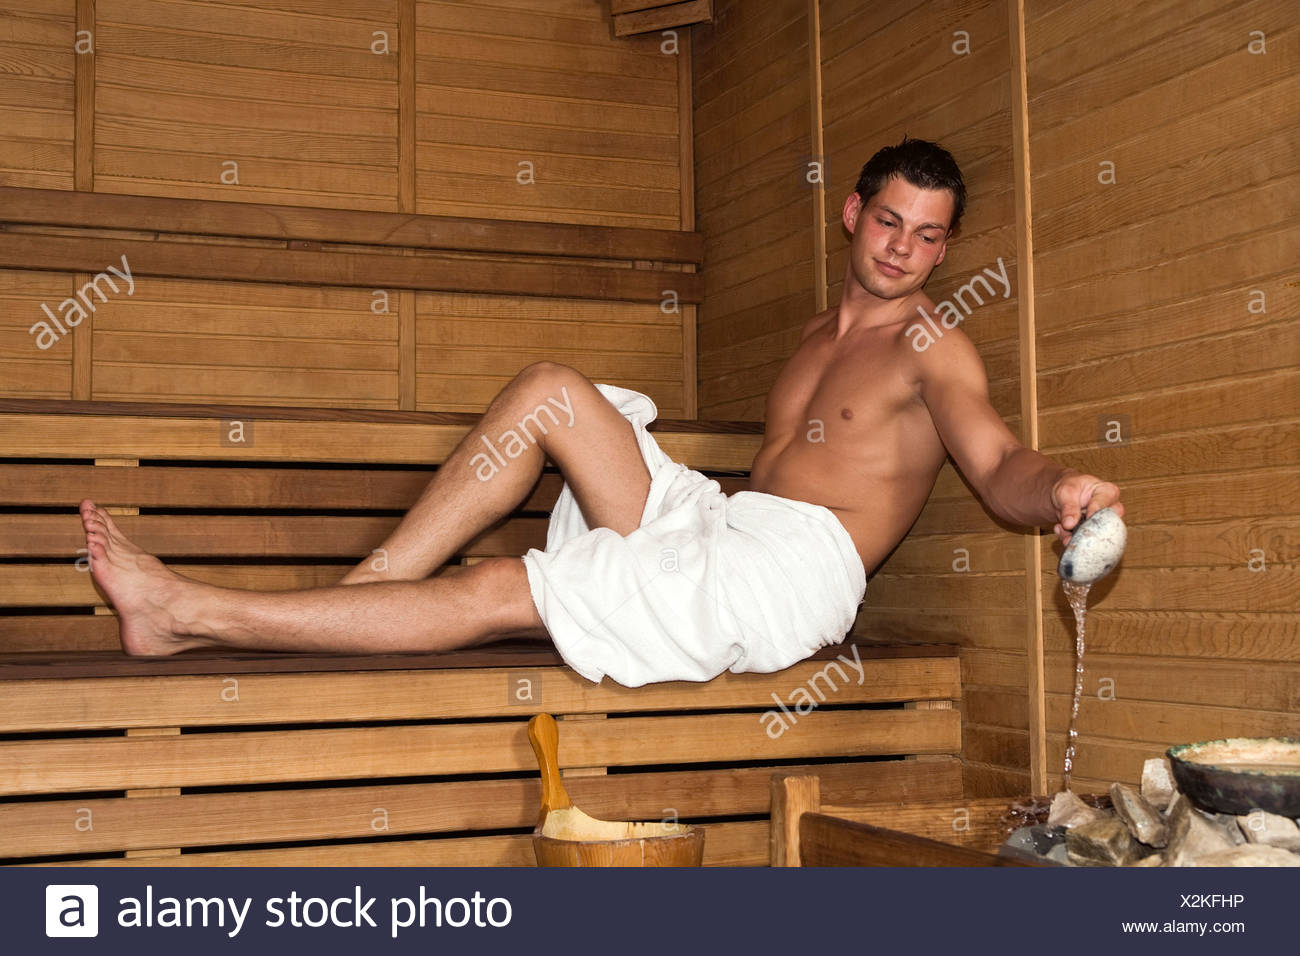 Turkey, Young man in sauna pouring water on stones - Stock Image